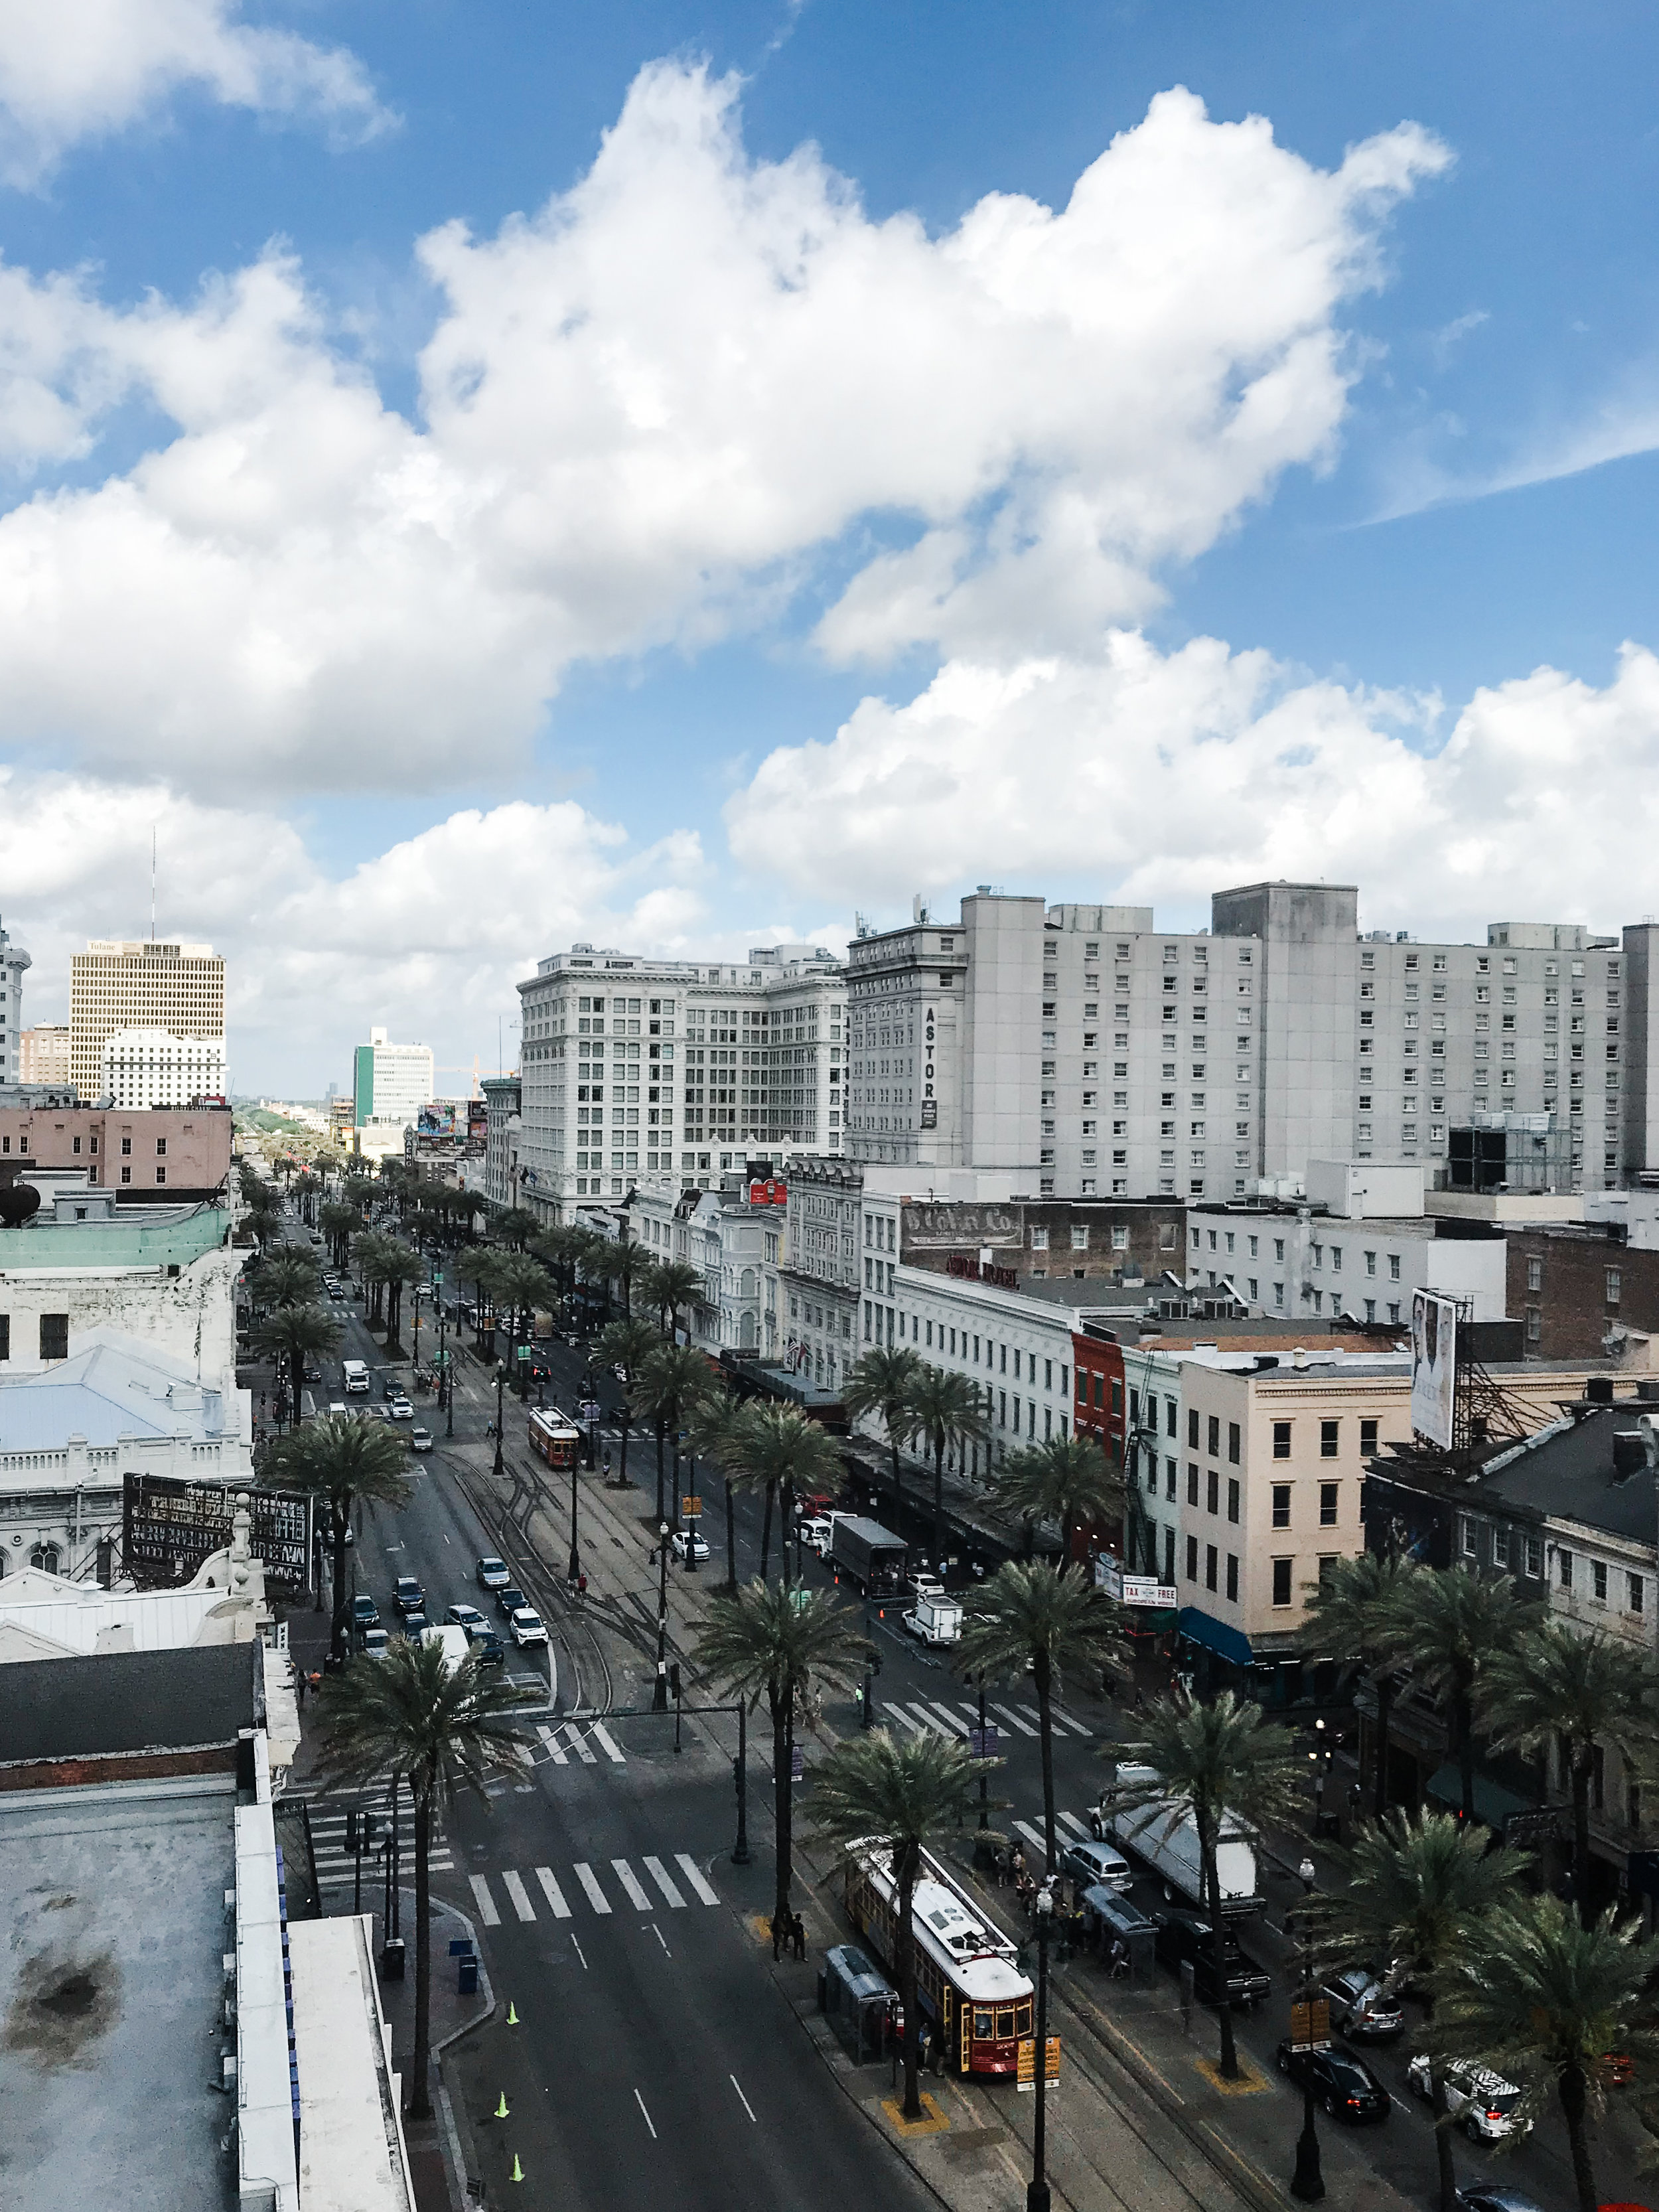 NOLA TRIP 2018 iphone FINAL-28.jpg